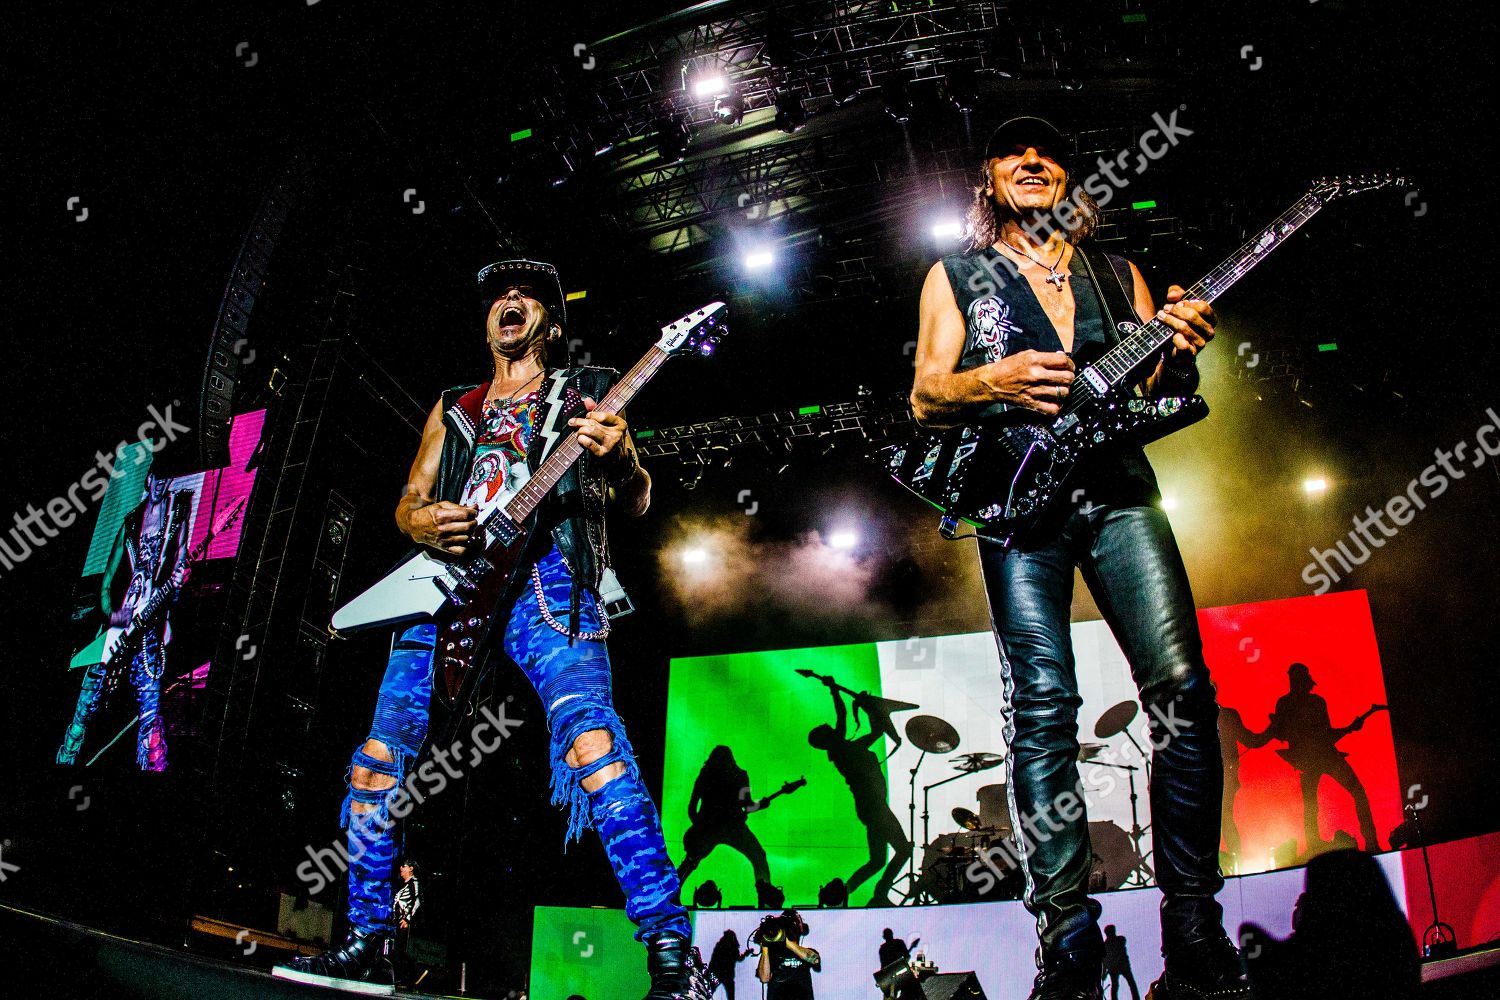 German rock band formed 1965 Scorpions performs Editorial